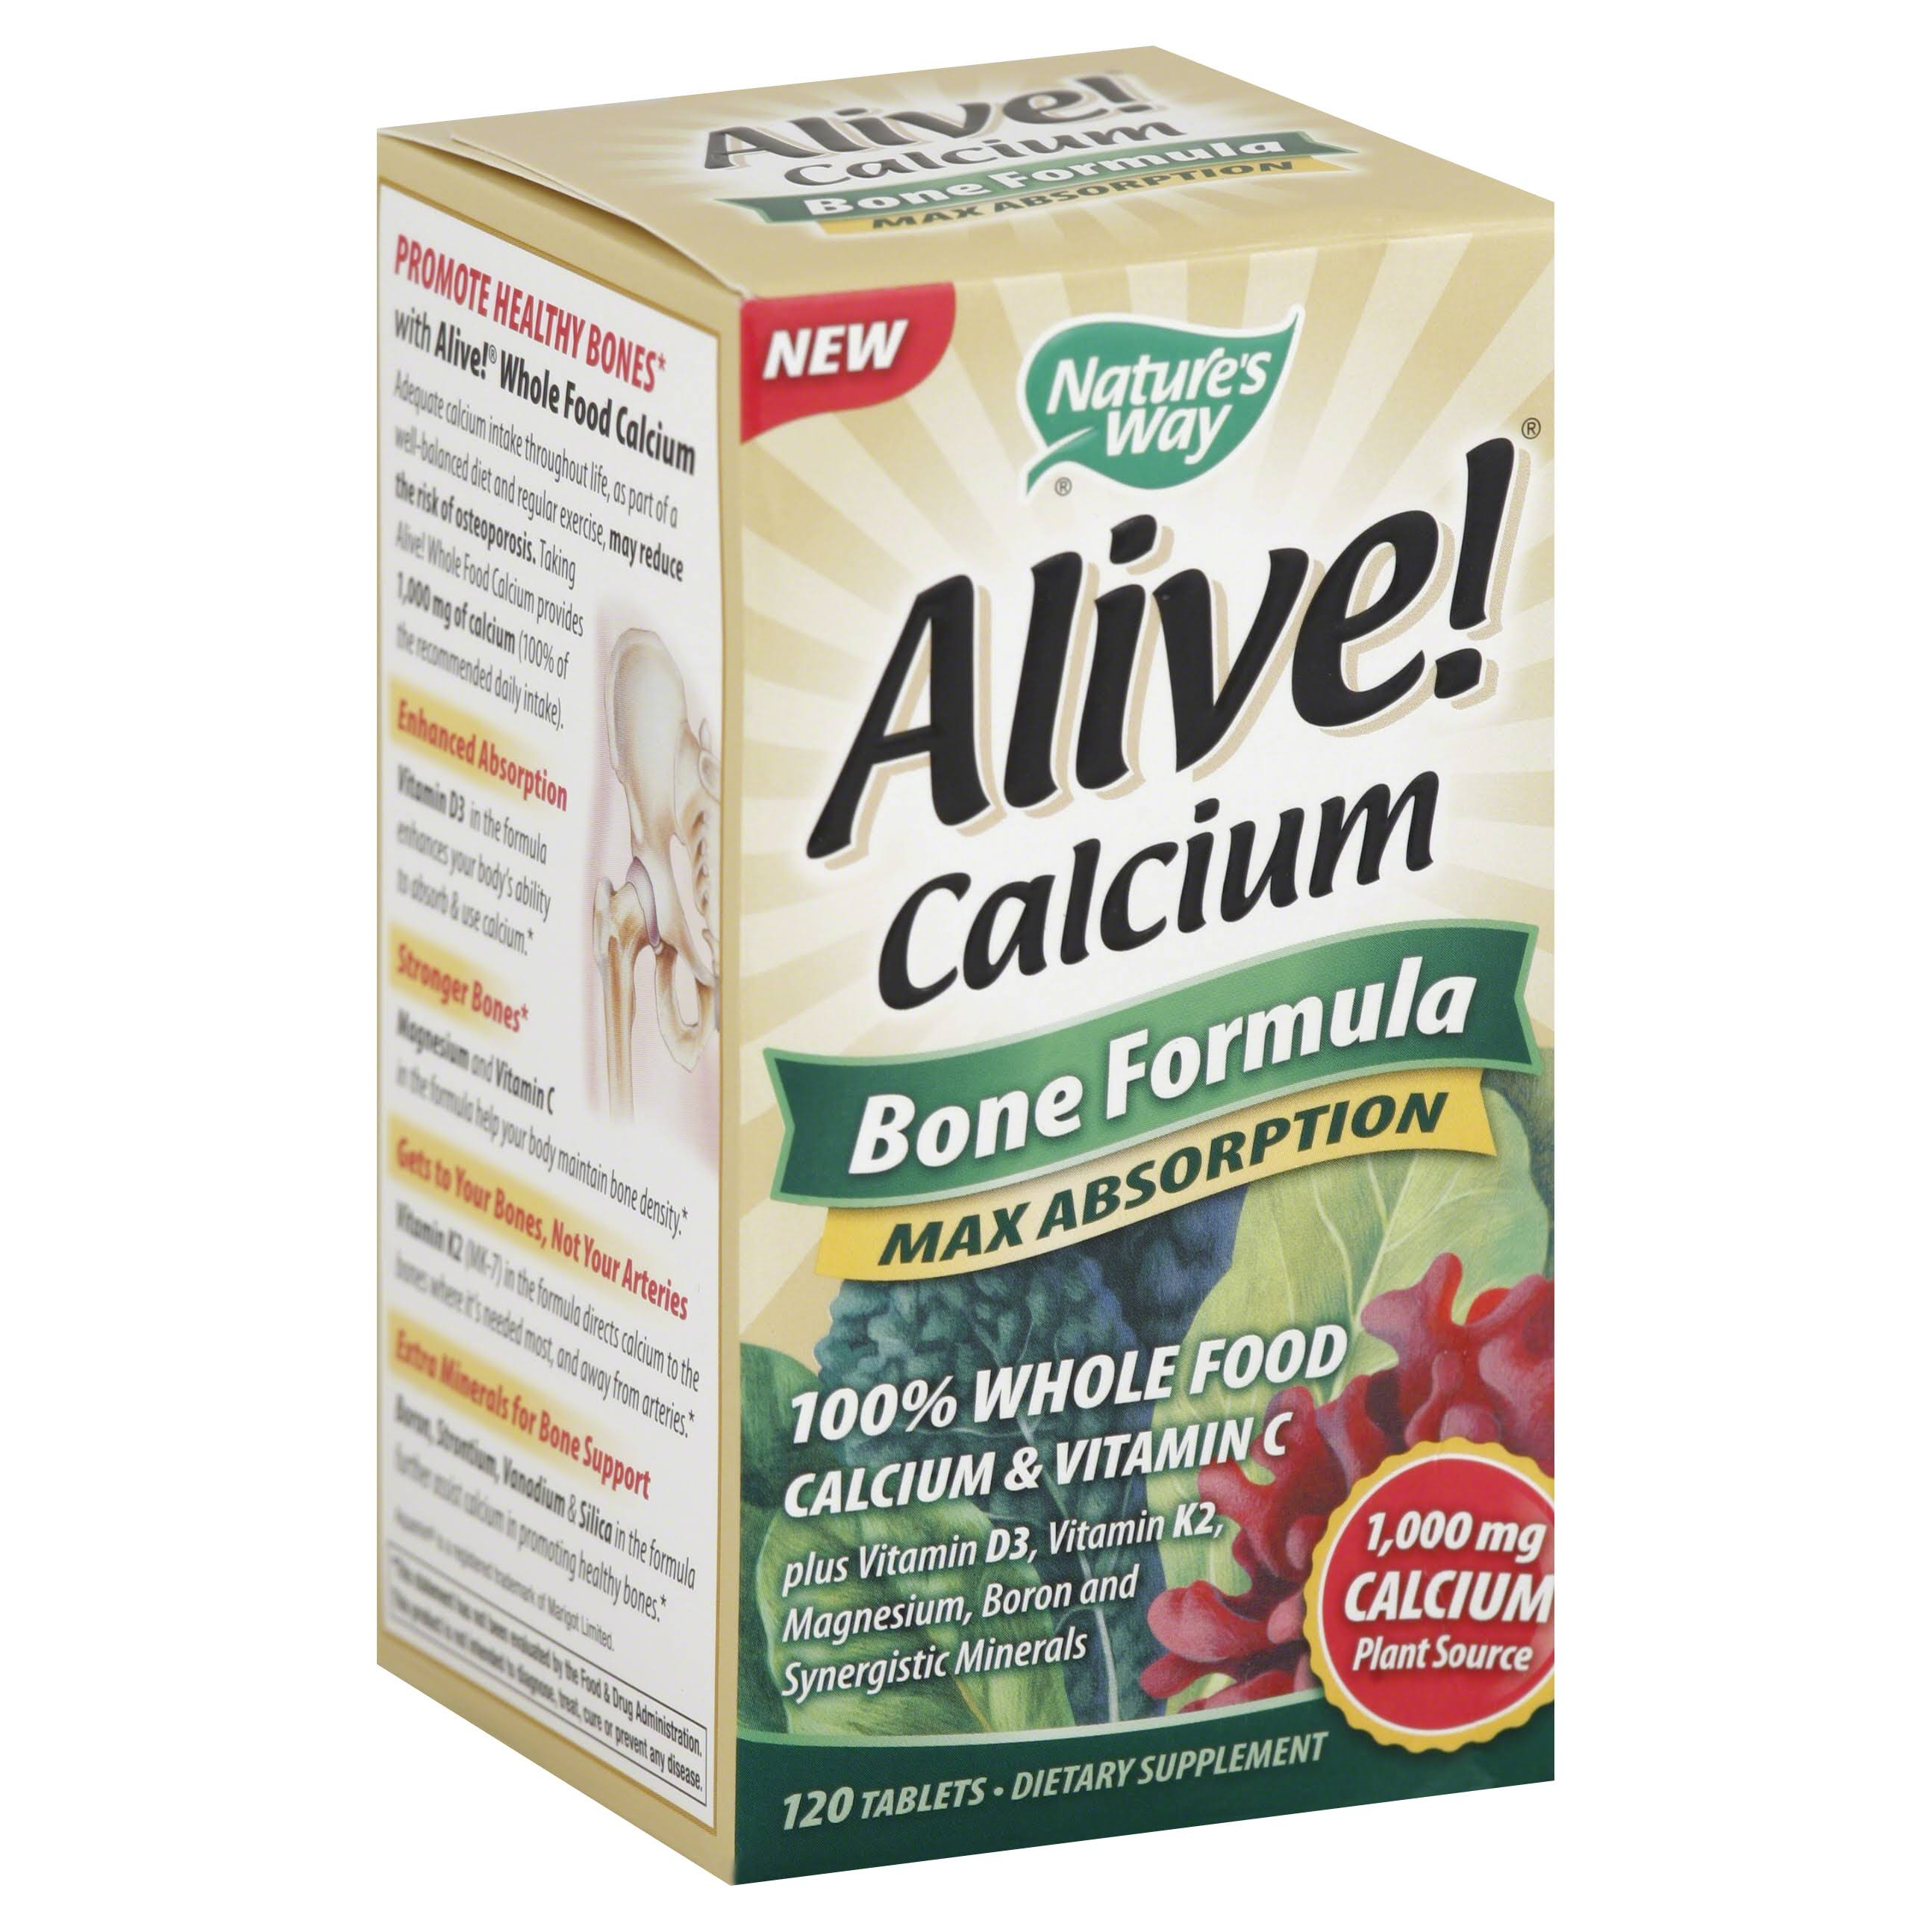 Nature's Way Alive! Calcium - 120 tablets